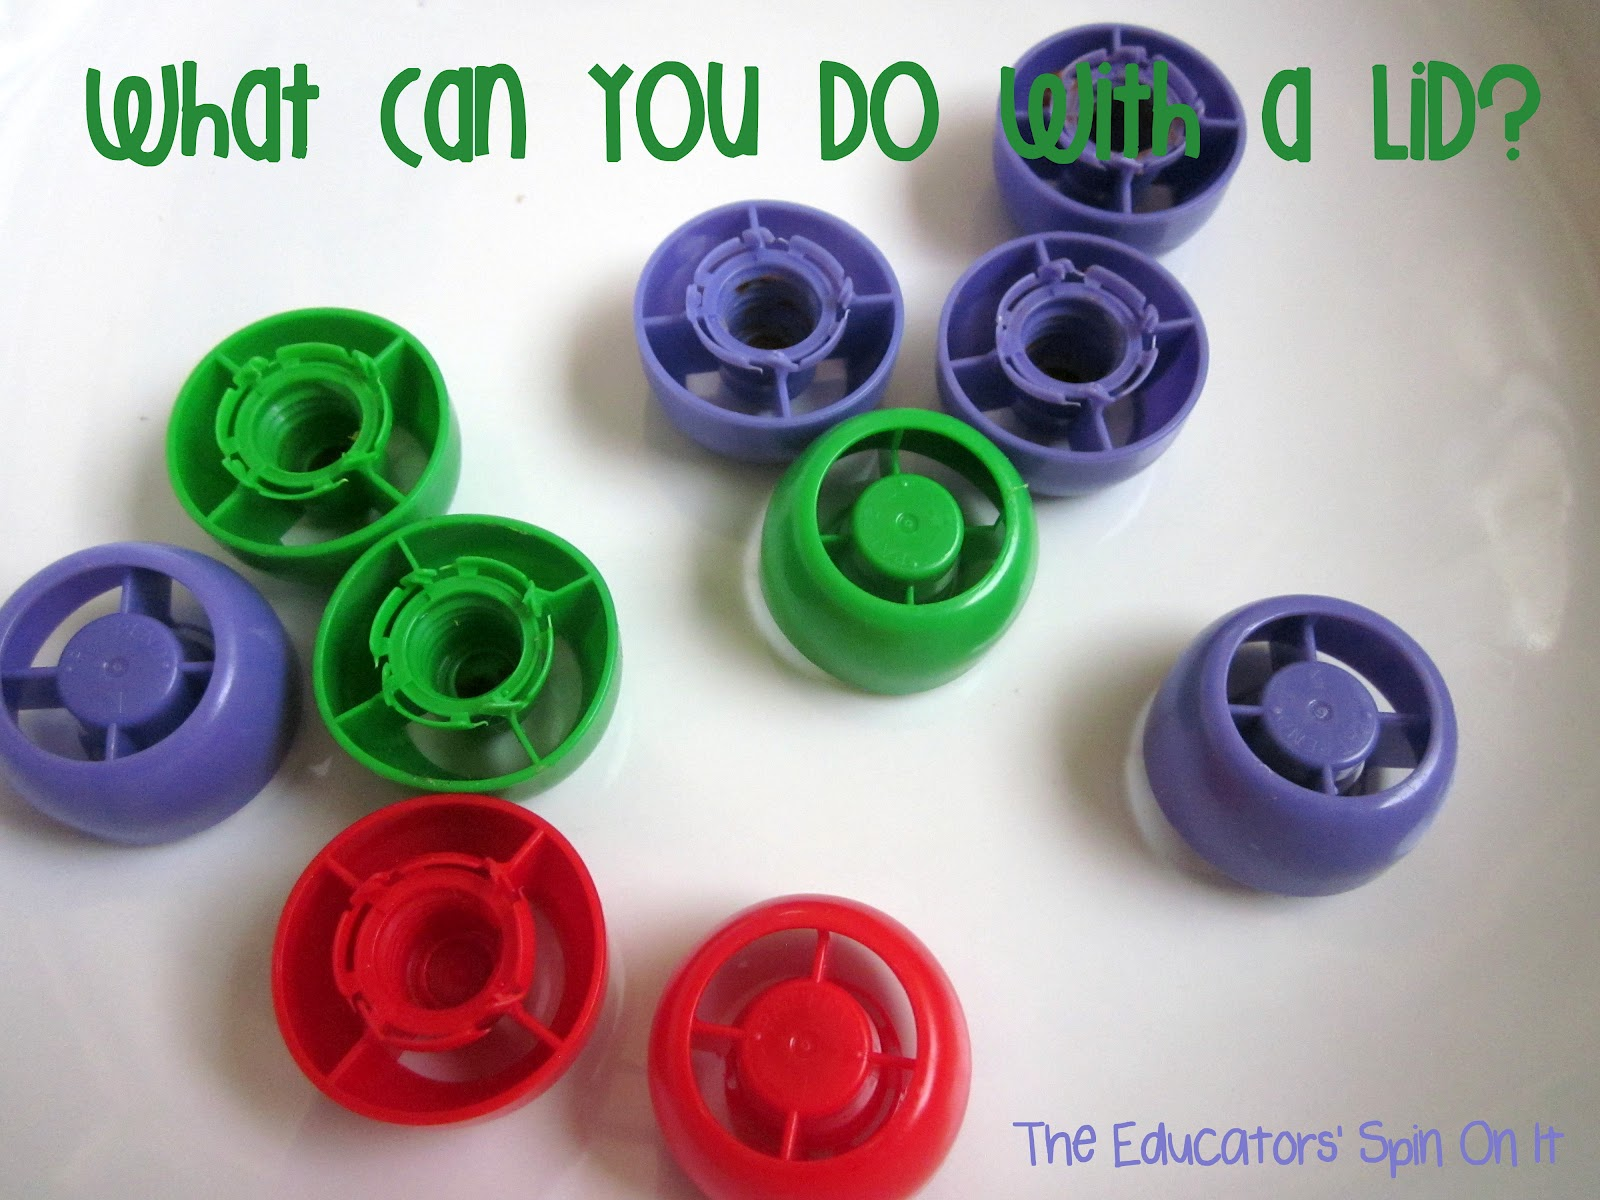 8 Activities for Kids with Lids - The Educators\' Spin On It